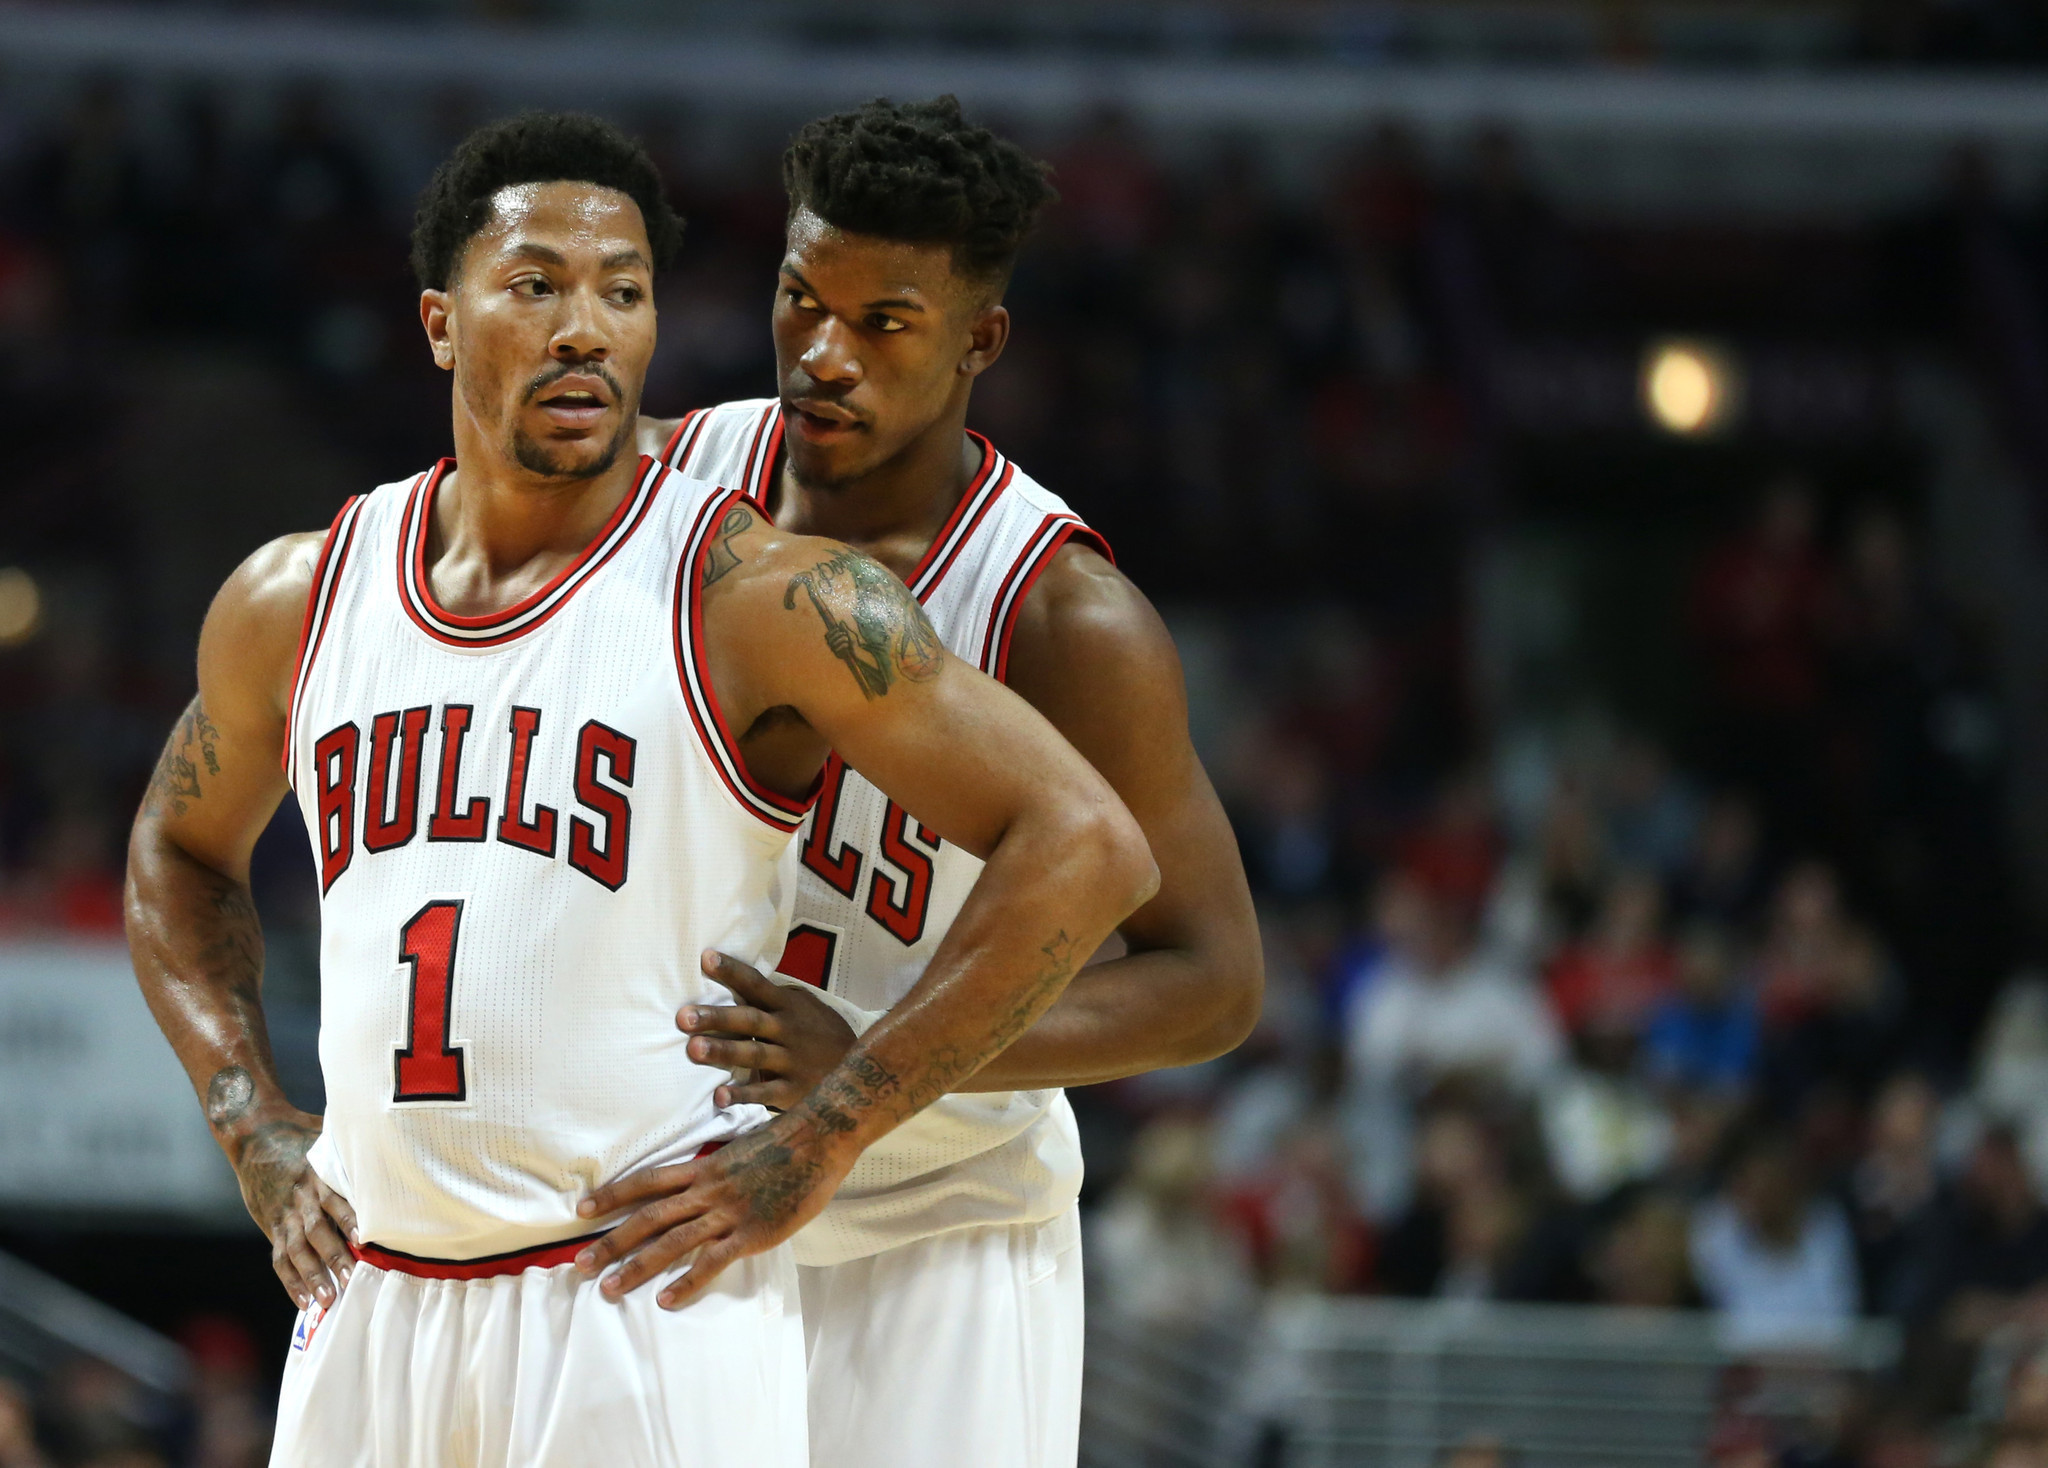 Most important thing is how Jimmy Butler, Derrick Rose do on the court –  Chicago Tribune